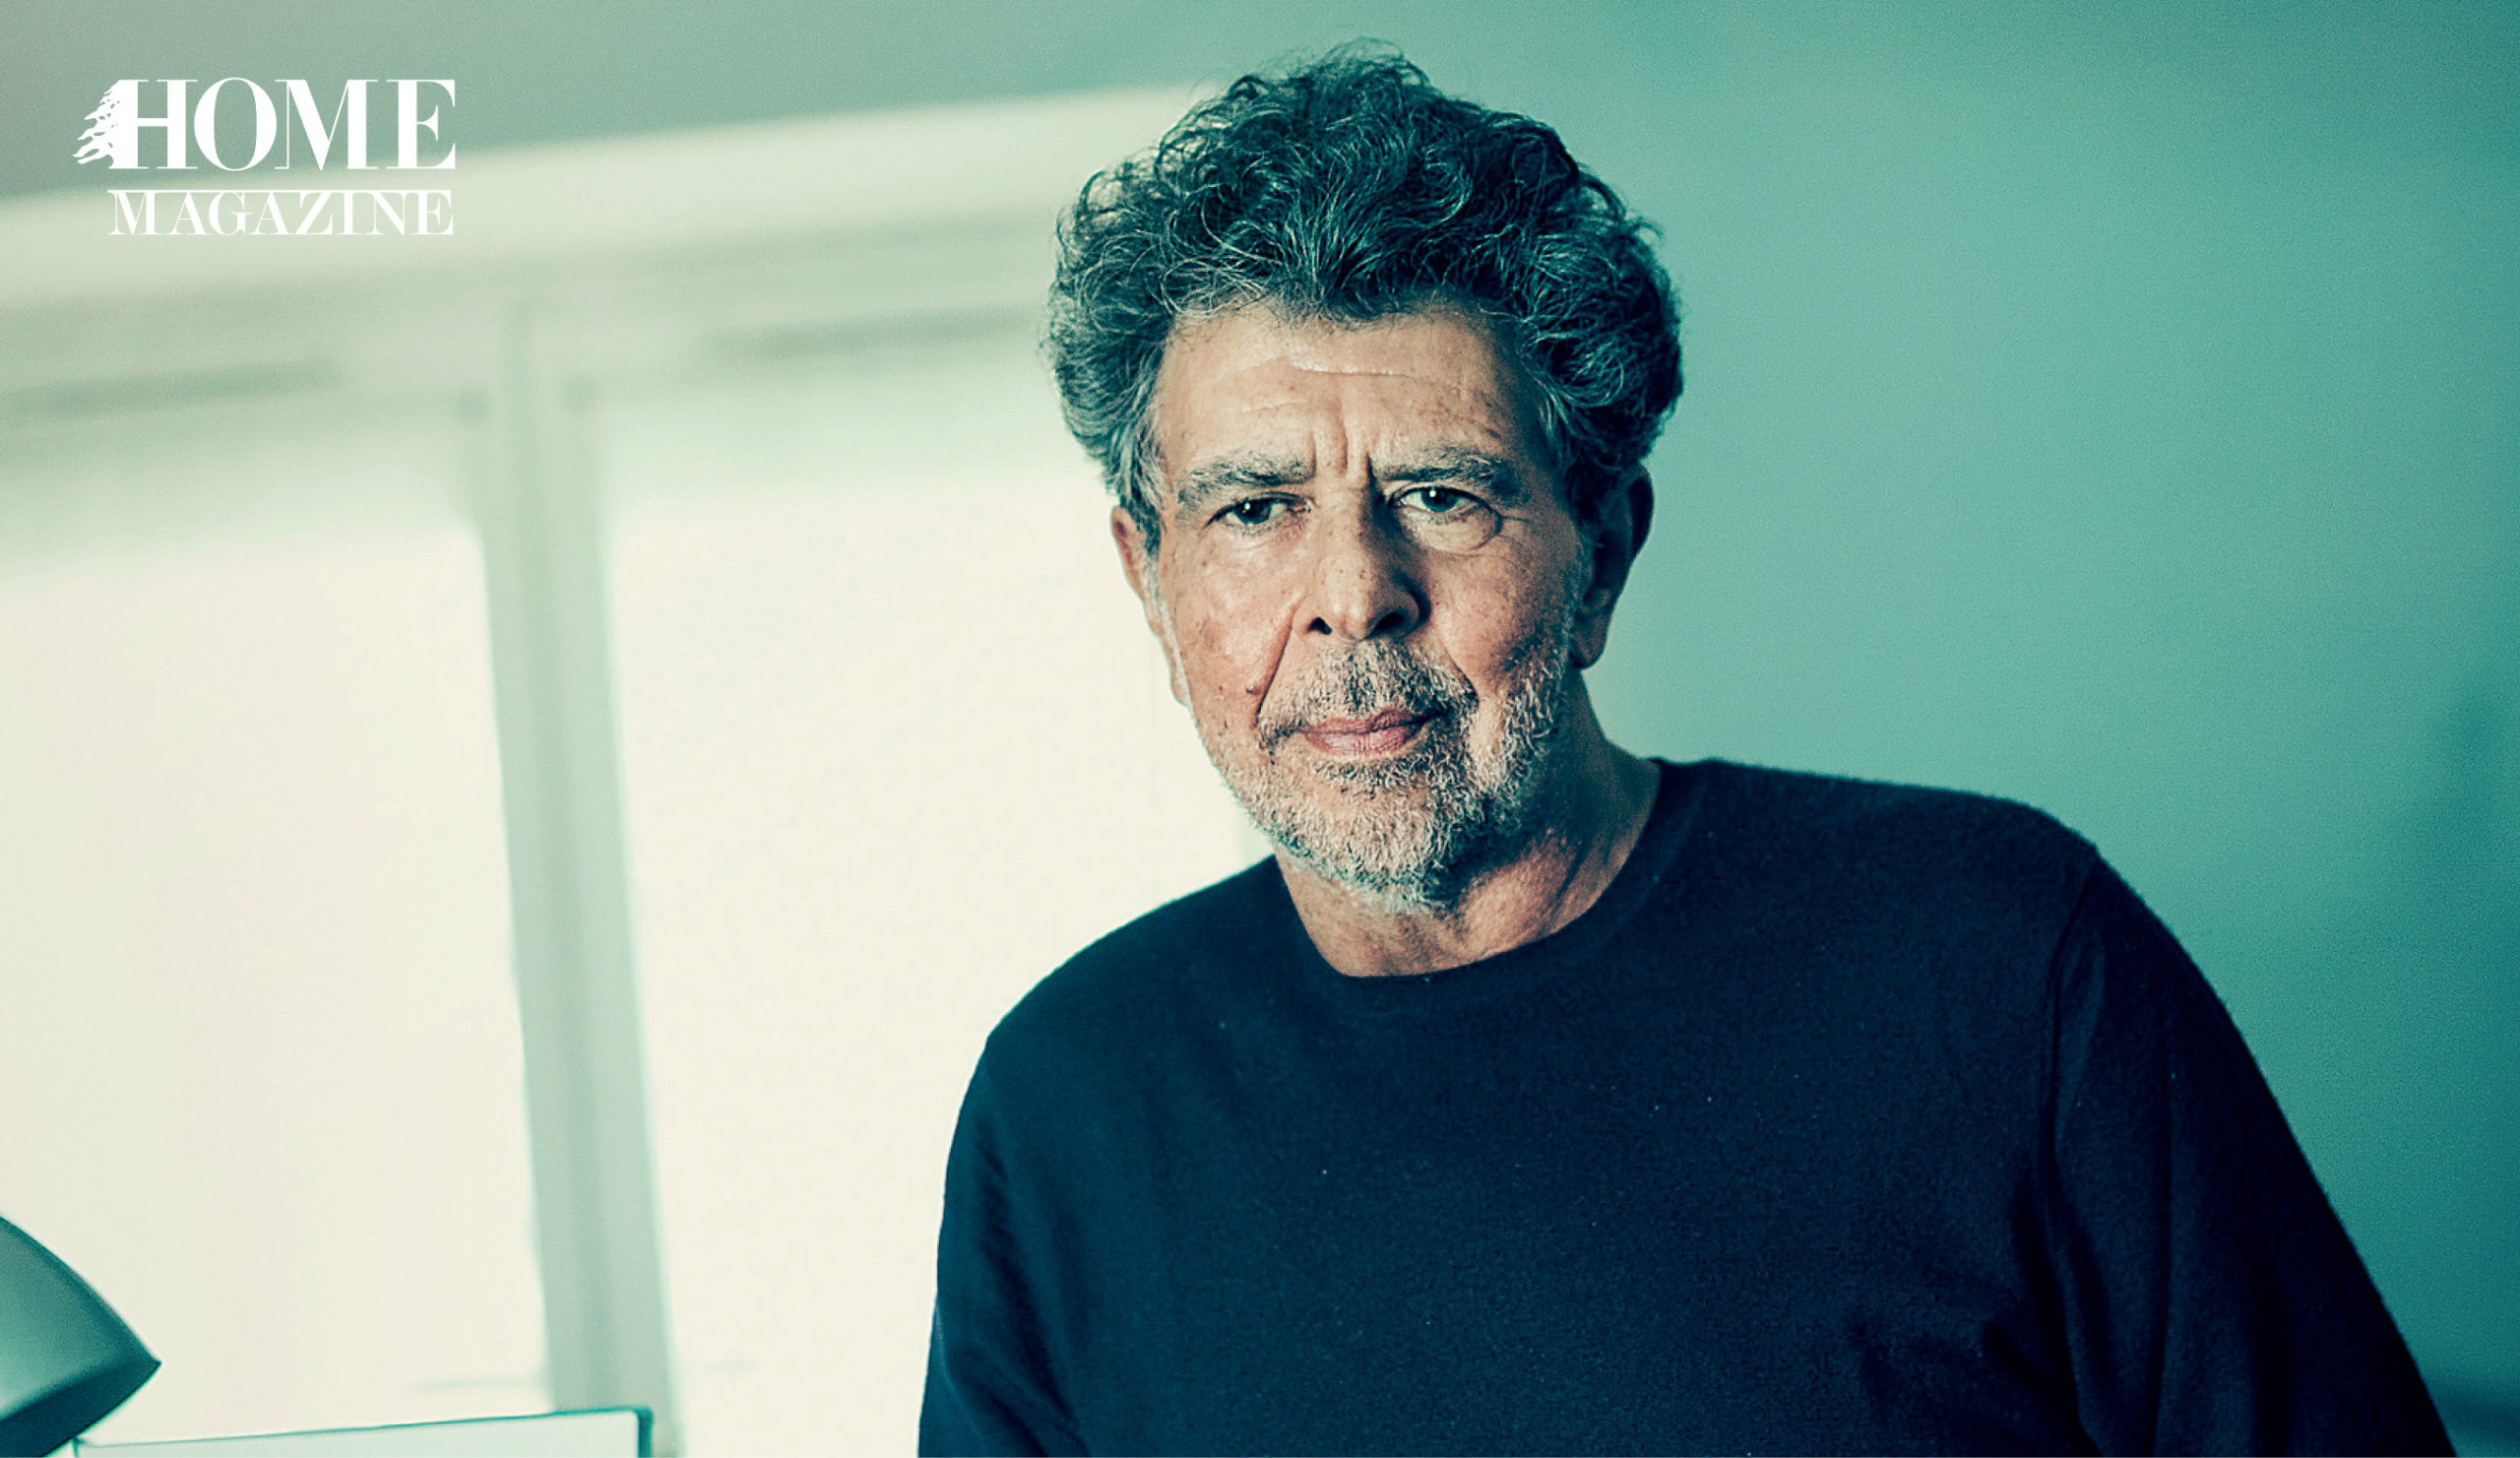 Man with curly hair in black shirt